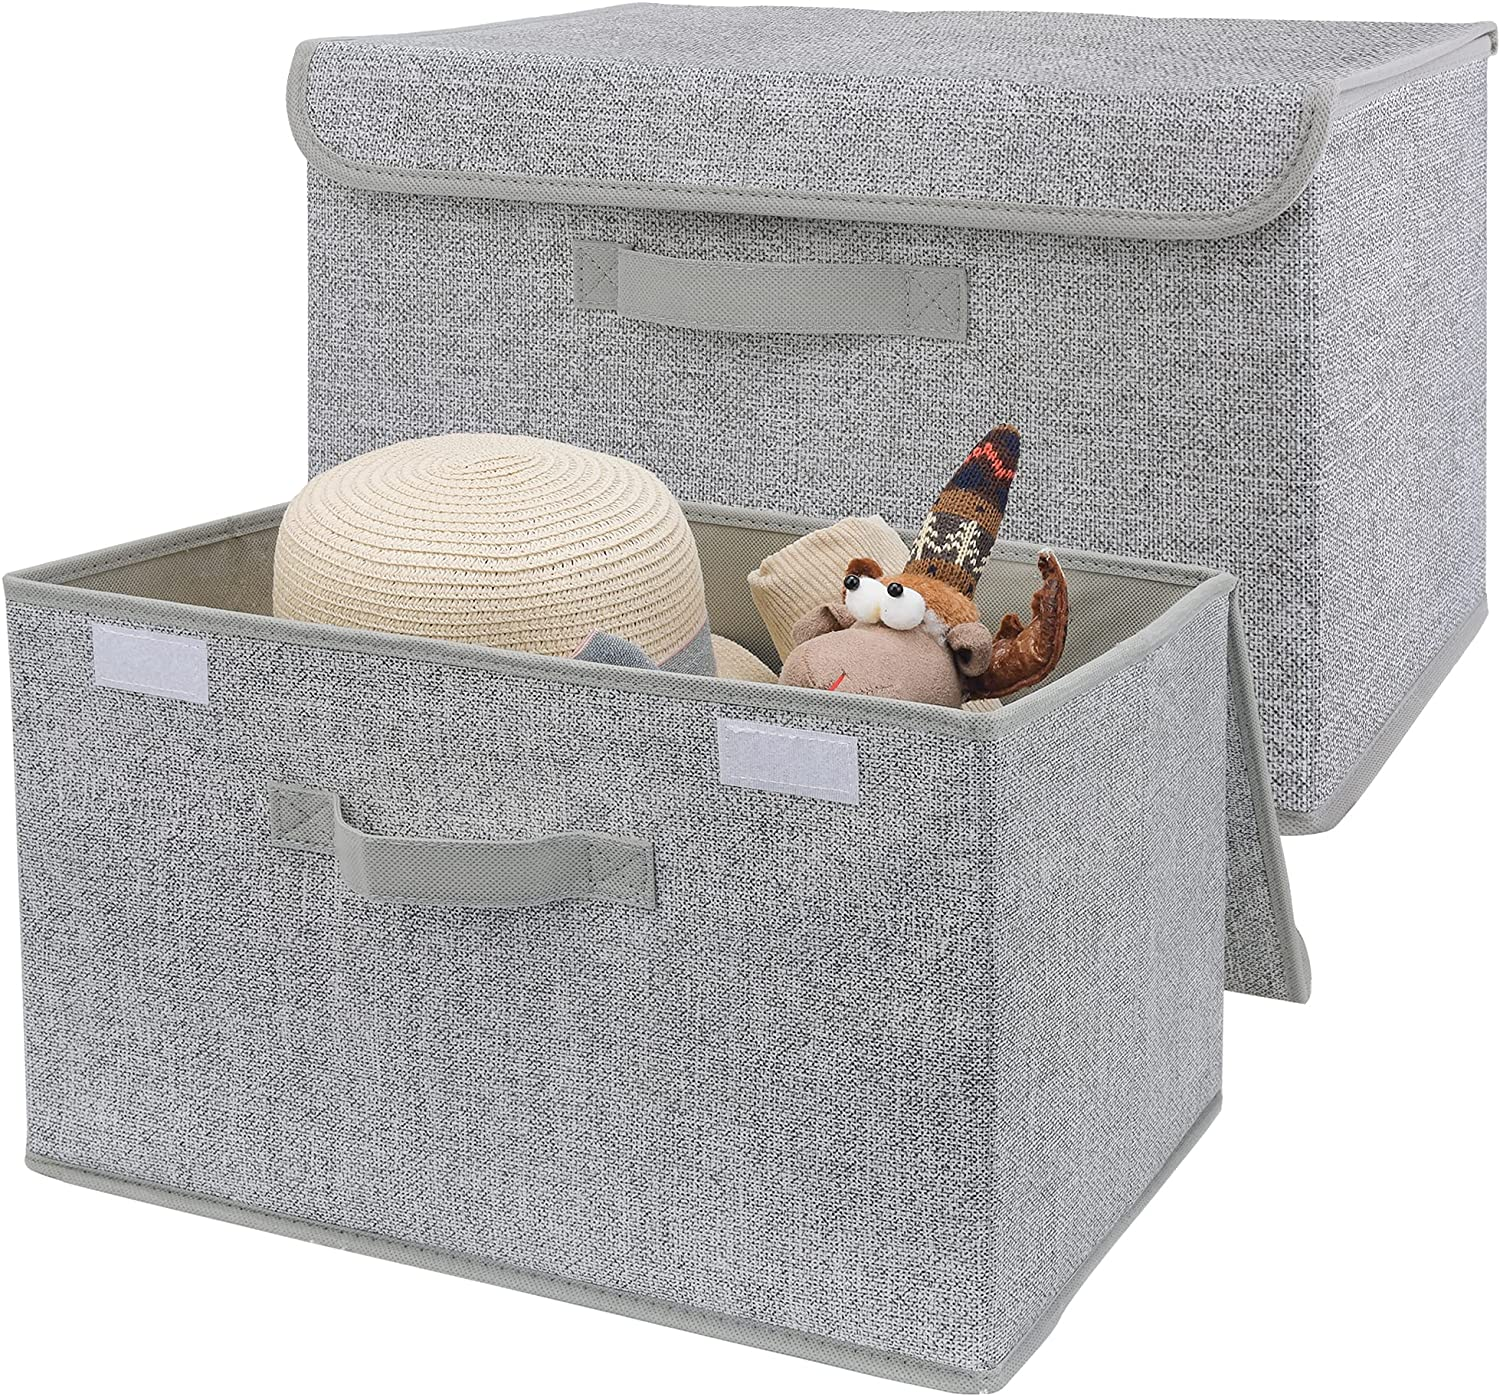 GRANNY SAYS Large Manufacturer regenerated product Storage Bins with Canvas Lids 2-Pack Special price for a limited time Boxes fo